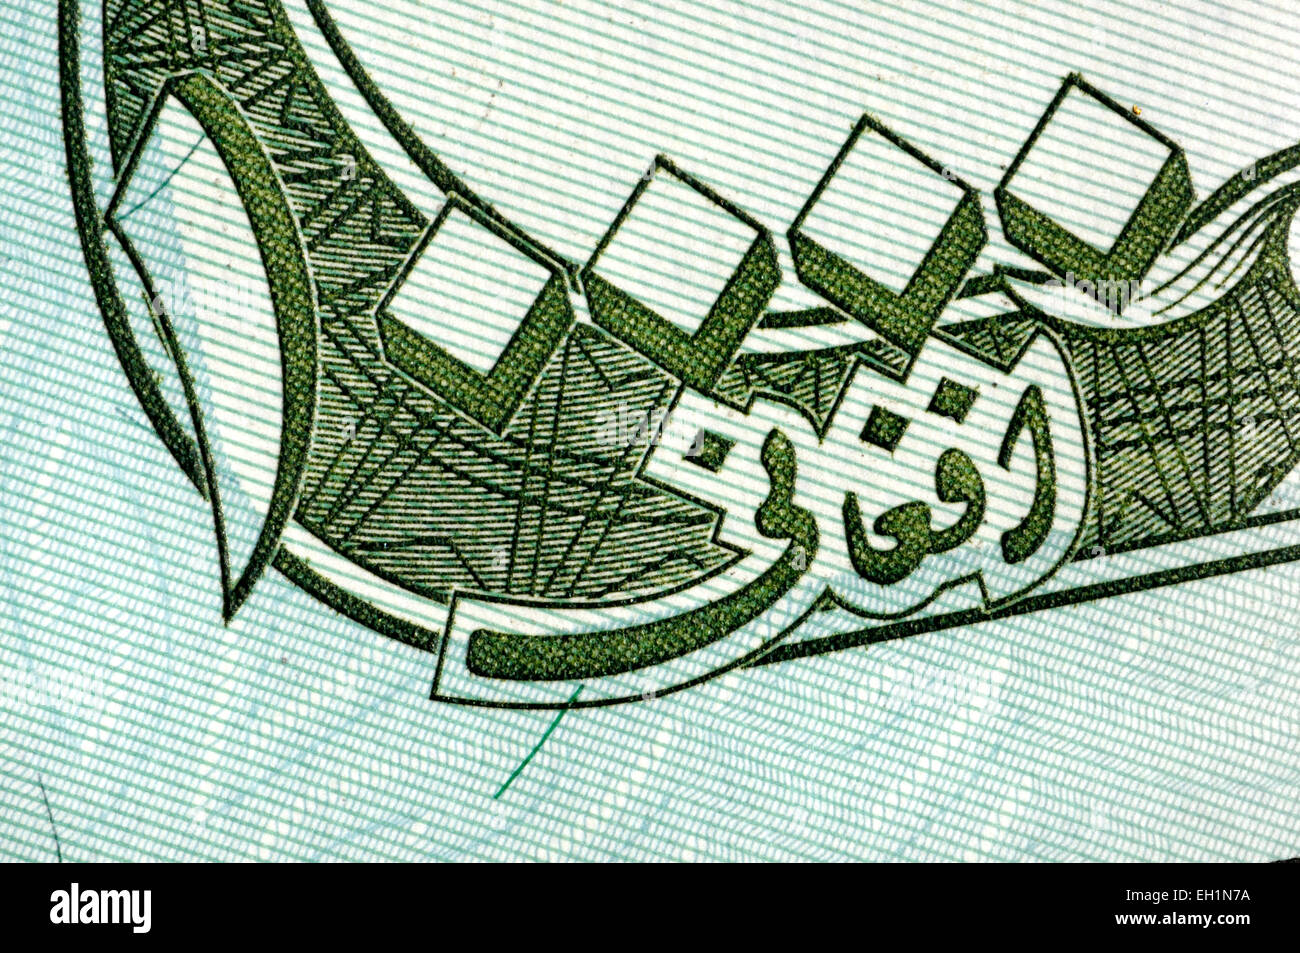 Detail from an Afghan 10,000 Afghani banknote showing the number 10,000 in  Eastern Arabic / Arabic–Indic numerals - Stock Image